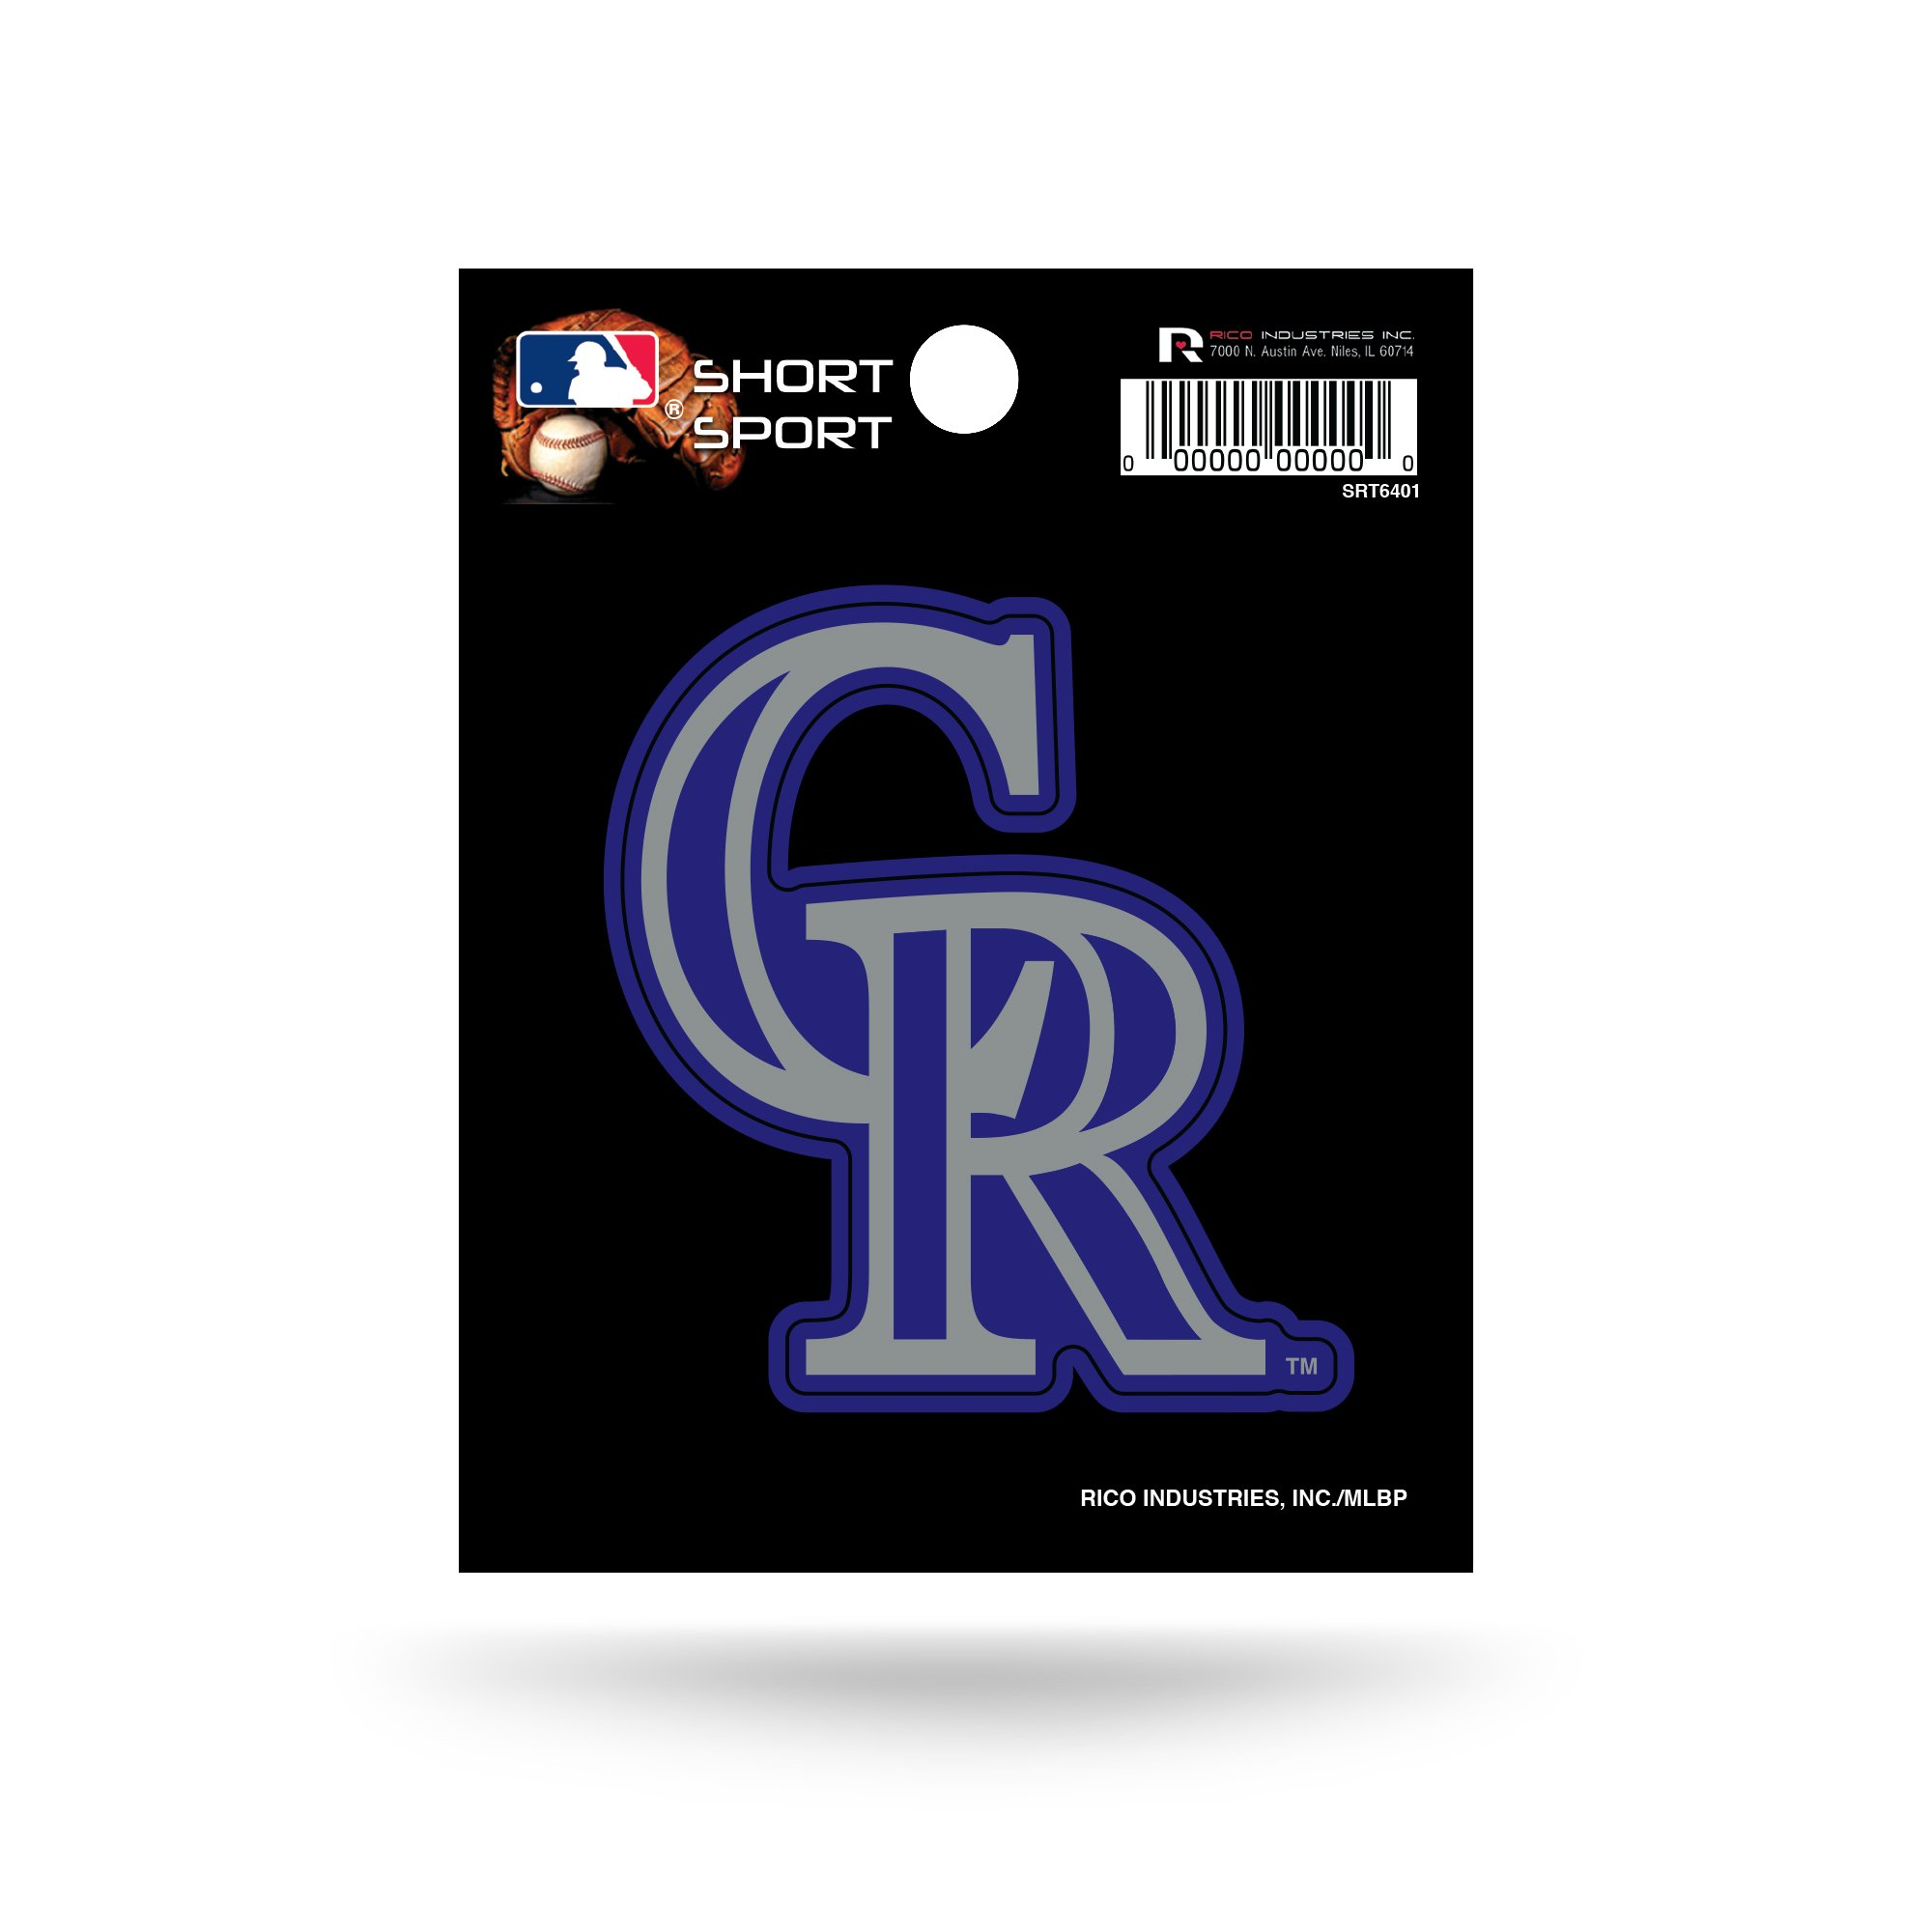 MLB Colorado Rockies Short Sport Decal by Rico Industries (Image #1)